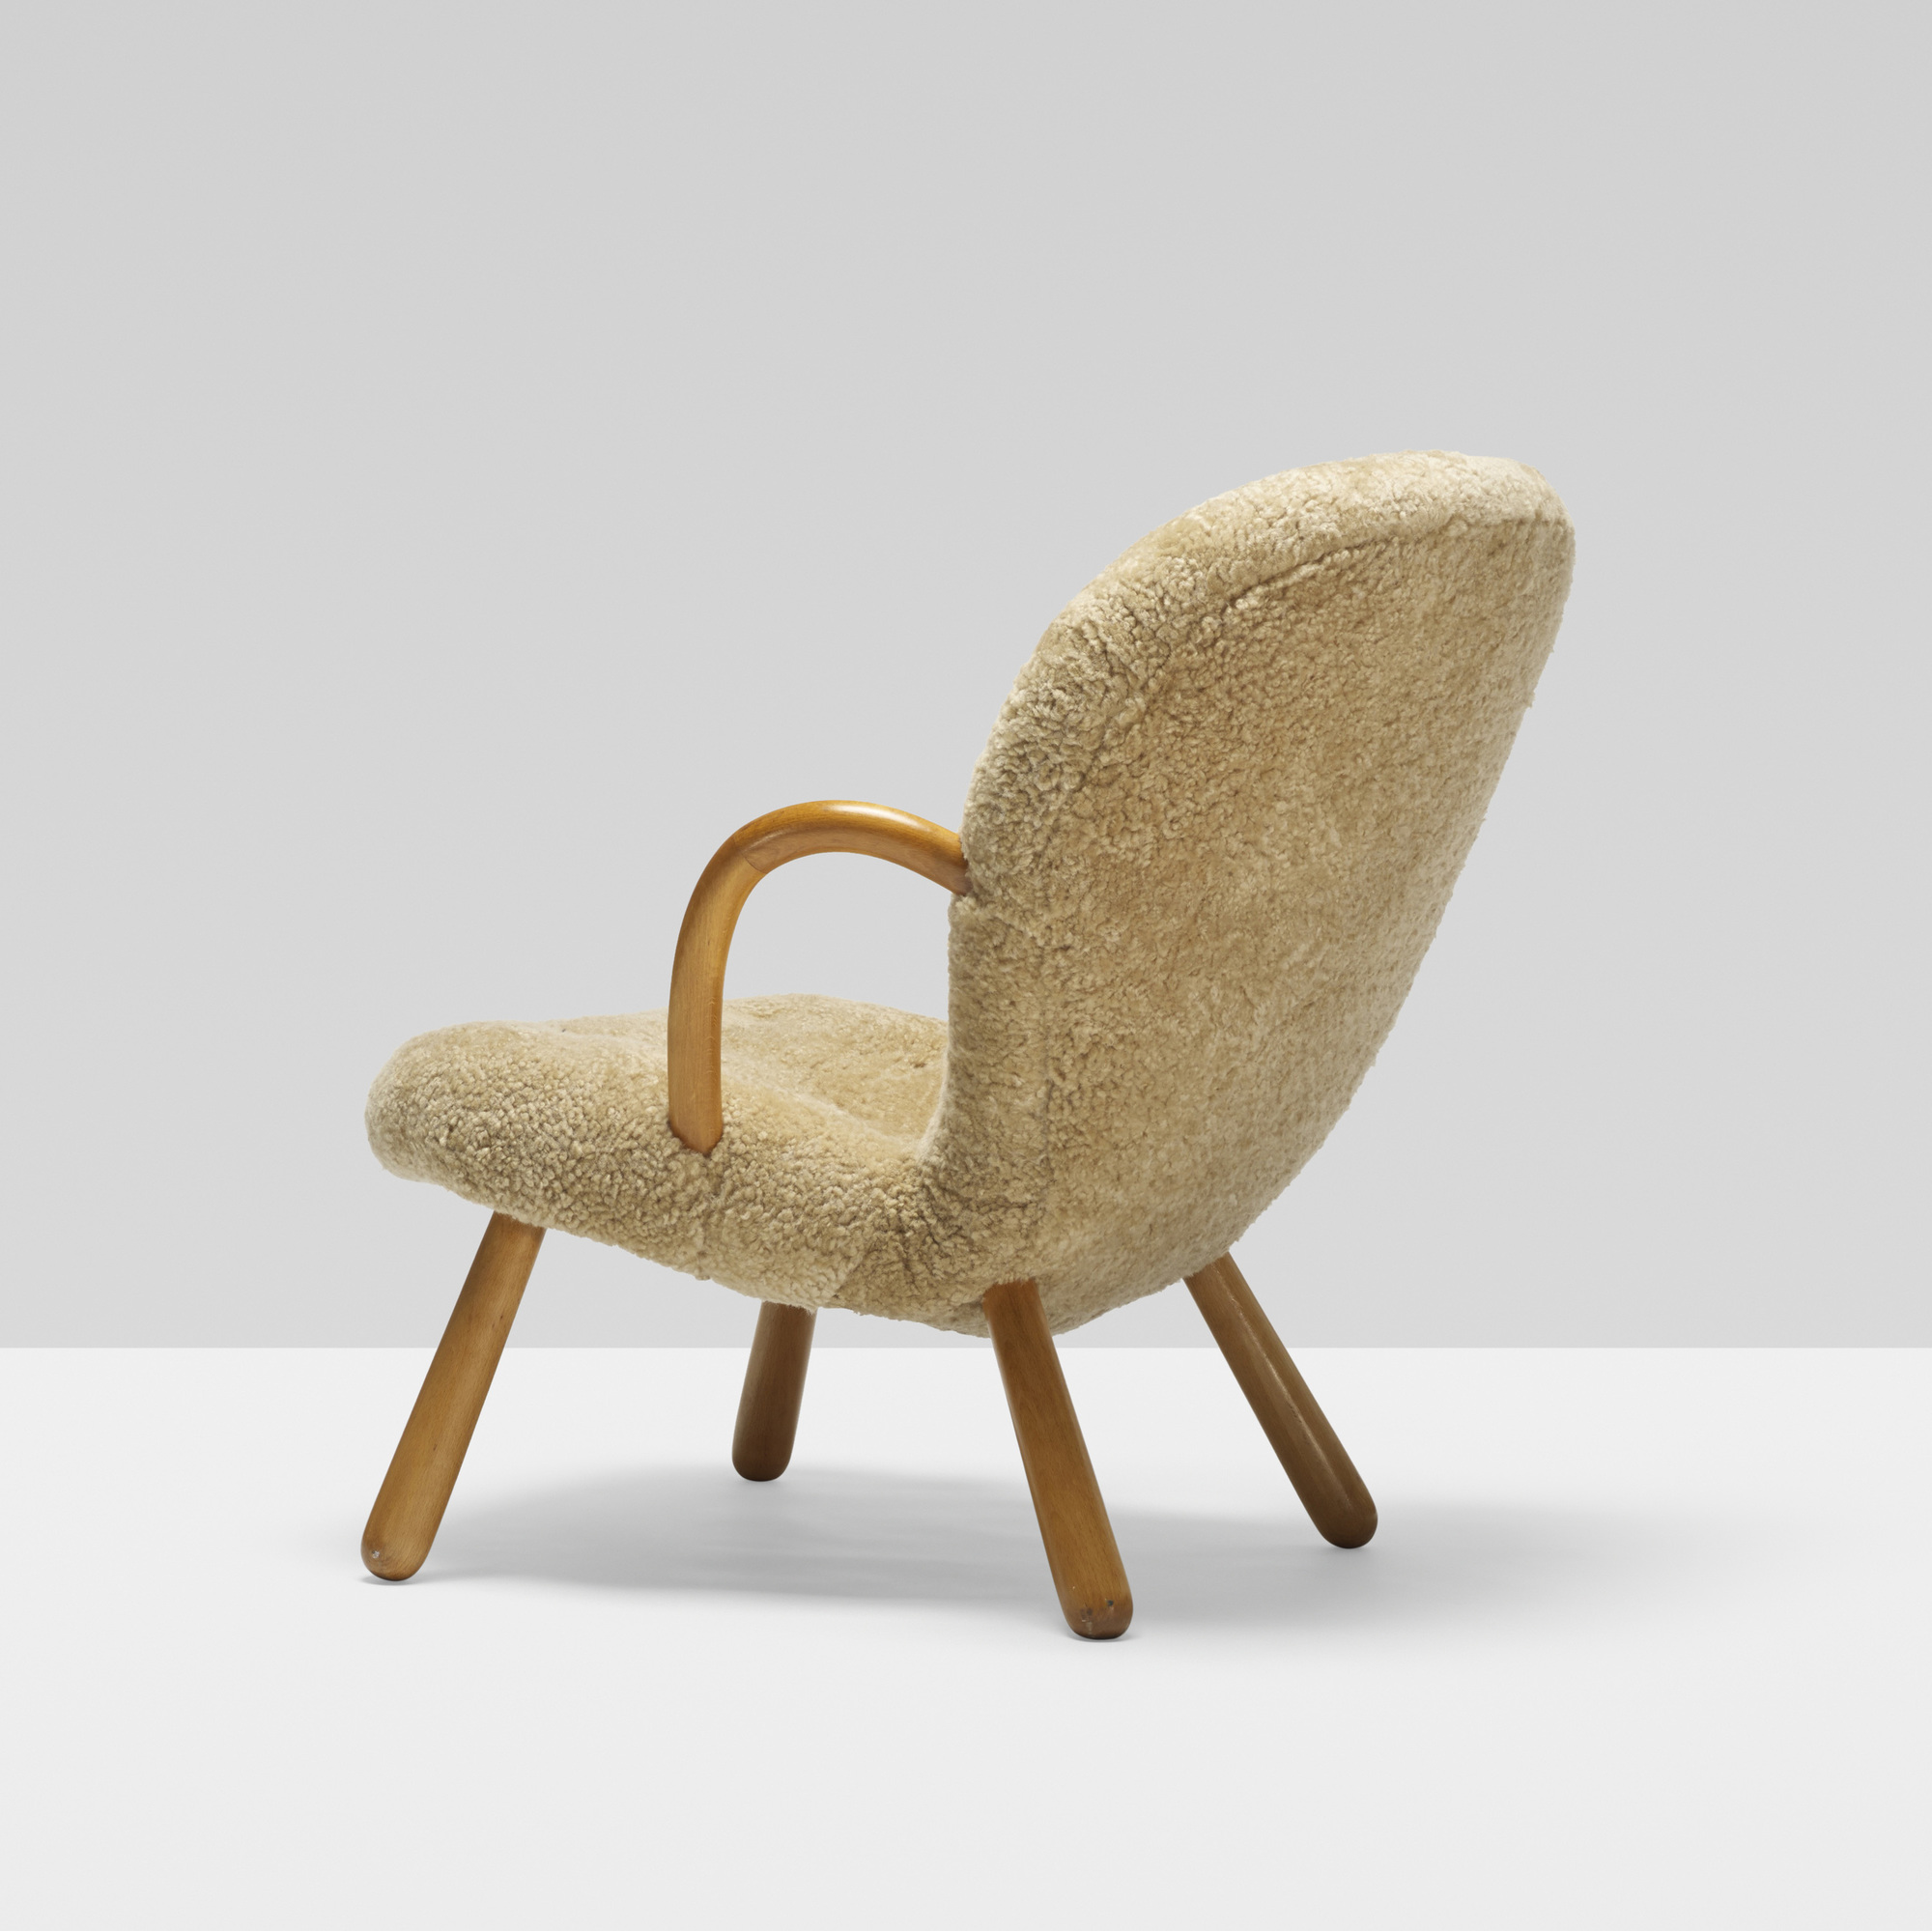 374: Philip Arctander / lounge chair (2 of 3)